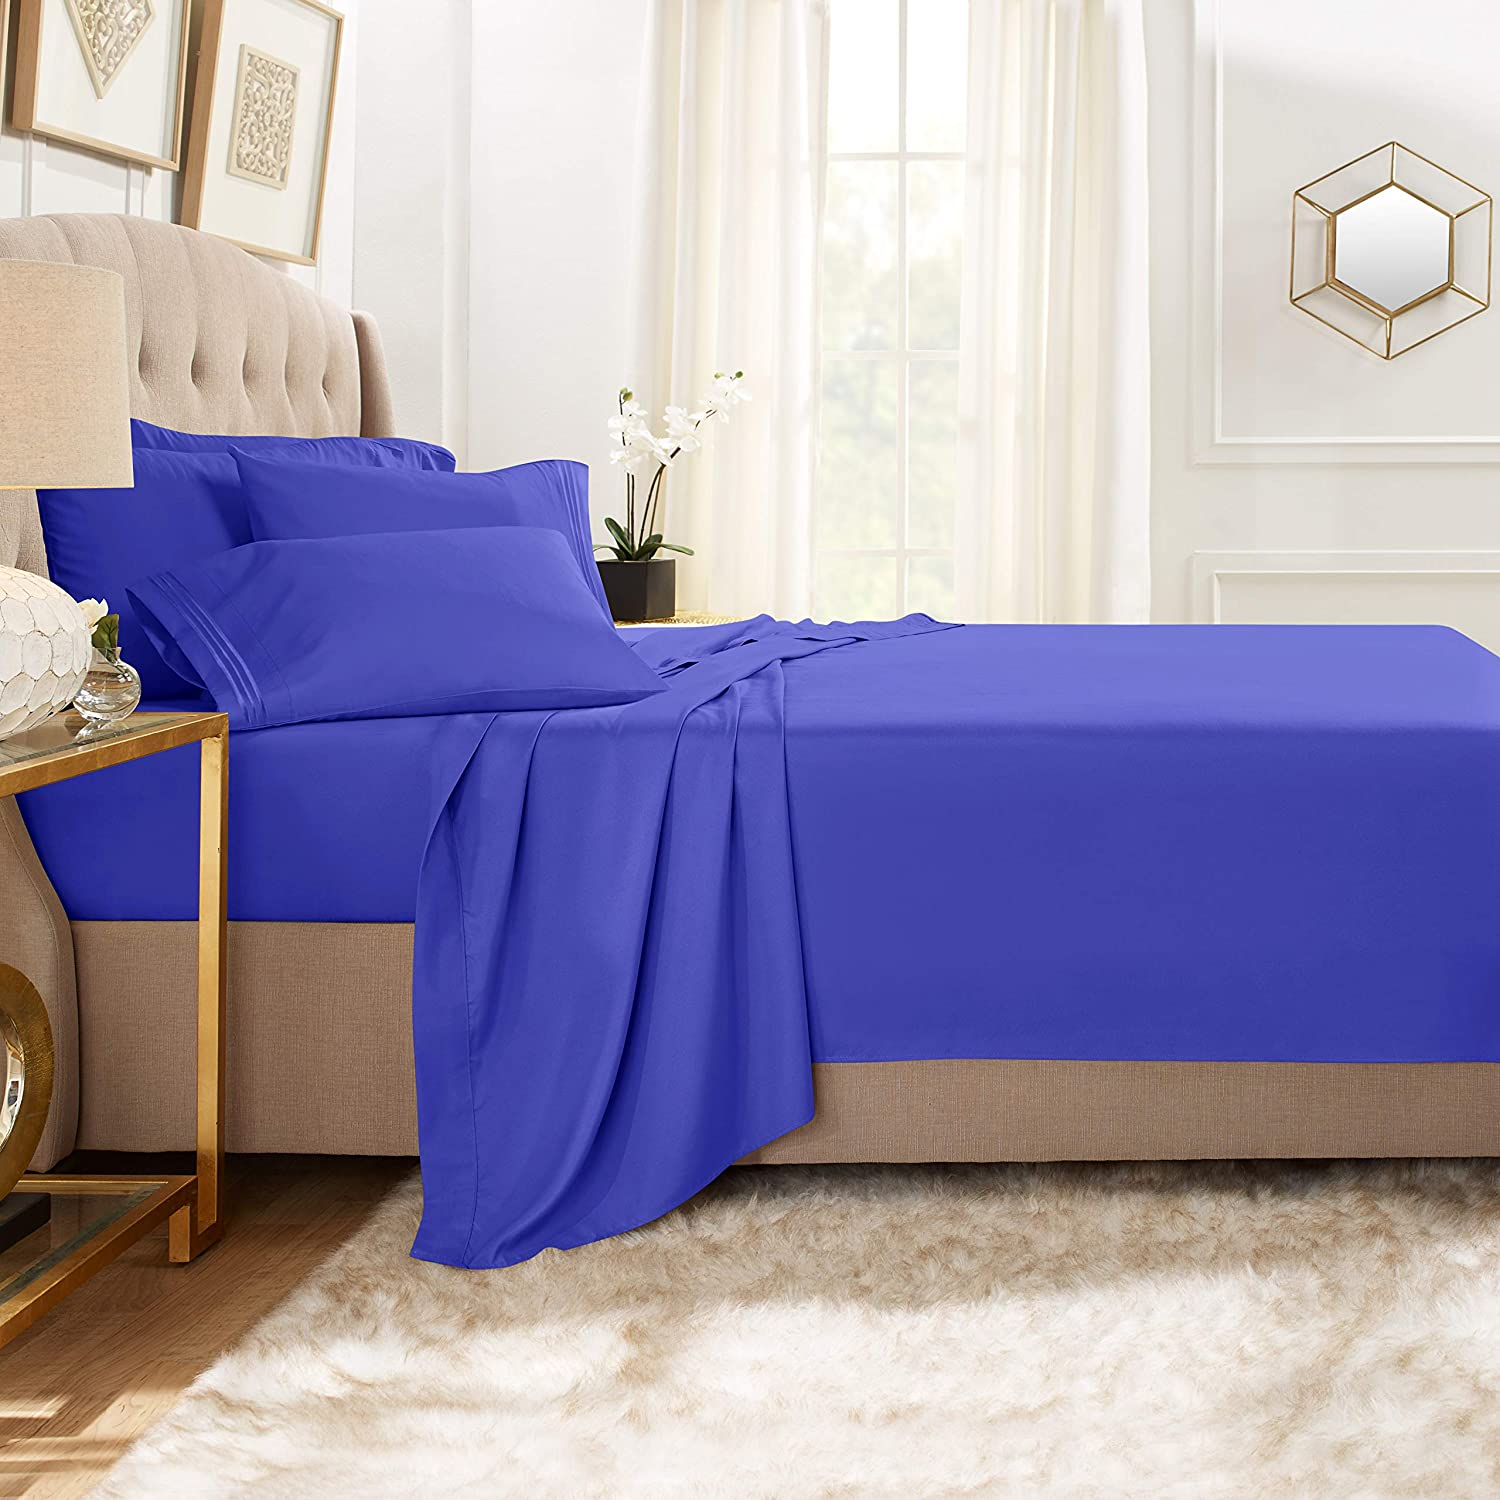 Clara Clark Premier 1800 Collection Bed Sheet Set with Extra Pillowcases Wrinkle, Fade & Stain Resistant, Full, Royal Blue